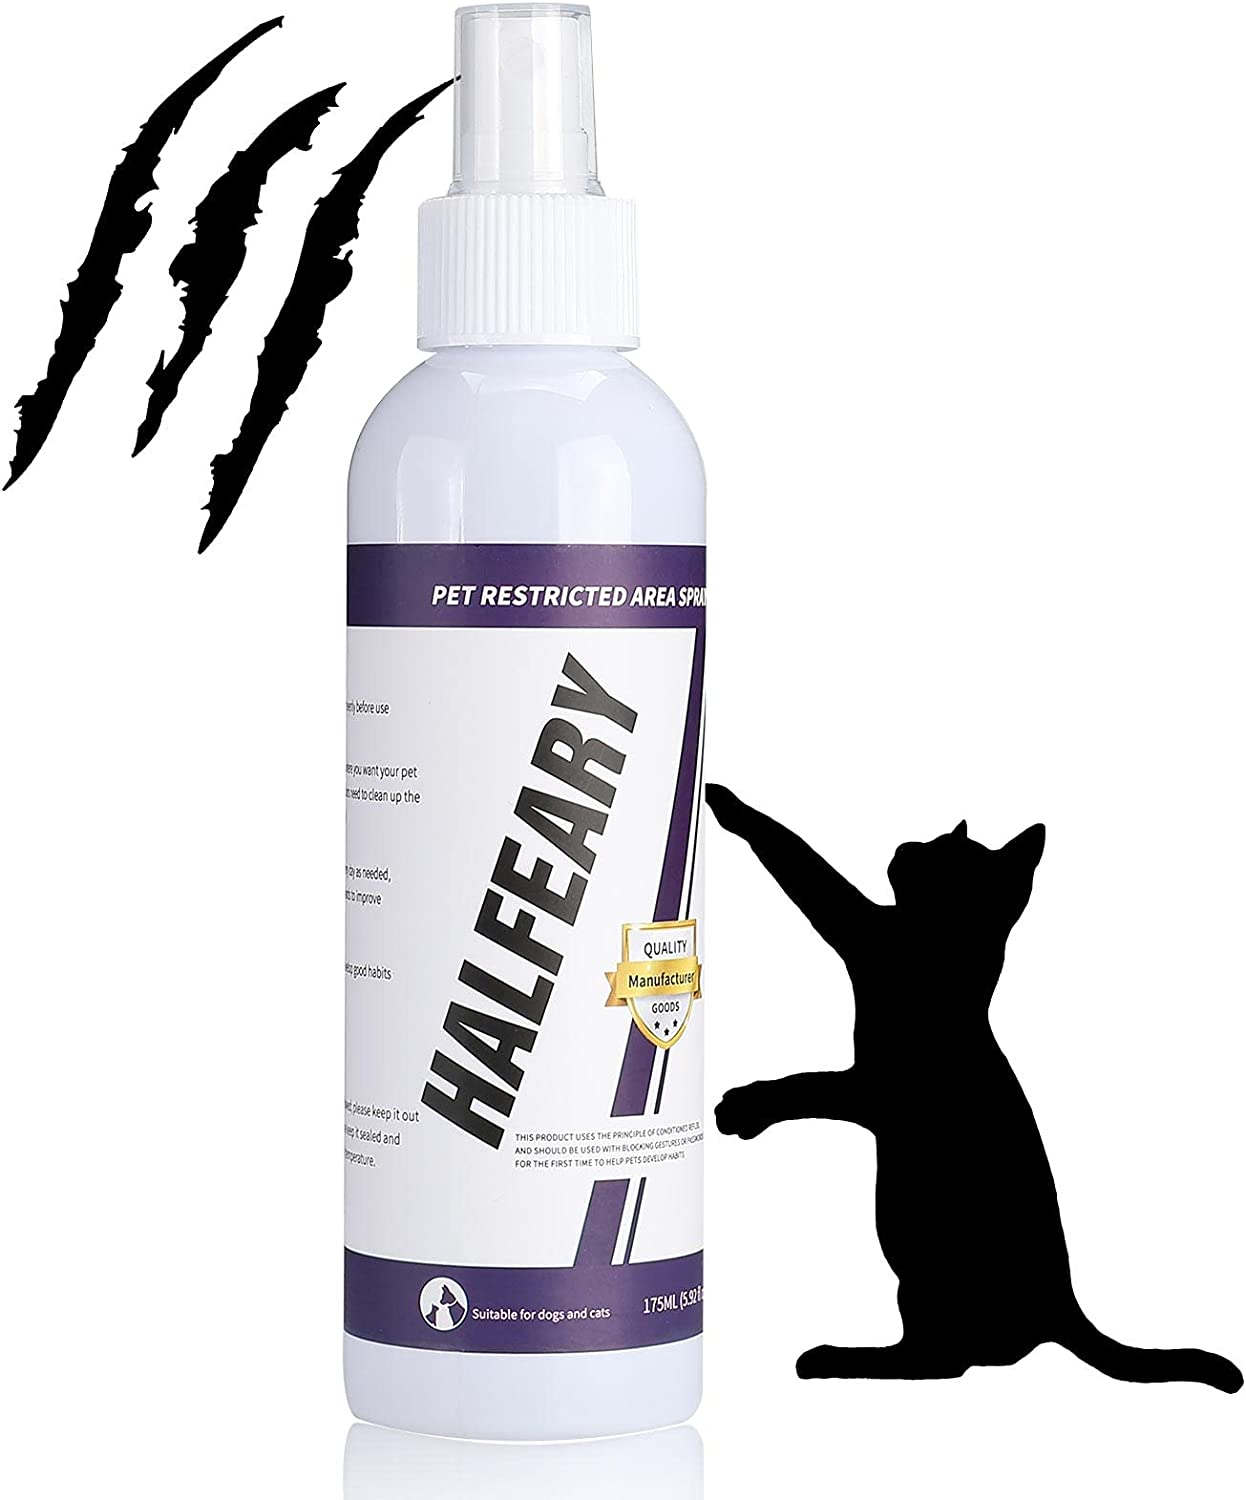 Cat Repellent Spray for Scratch - Cat Deterrent Spray Protect Our Furniture, Plants, Floor, Suit for Indoor and Outdoor, Cat Spray Deterrent for Anti Scratching & Biting, Cat & Kitten Training Aid